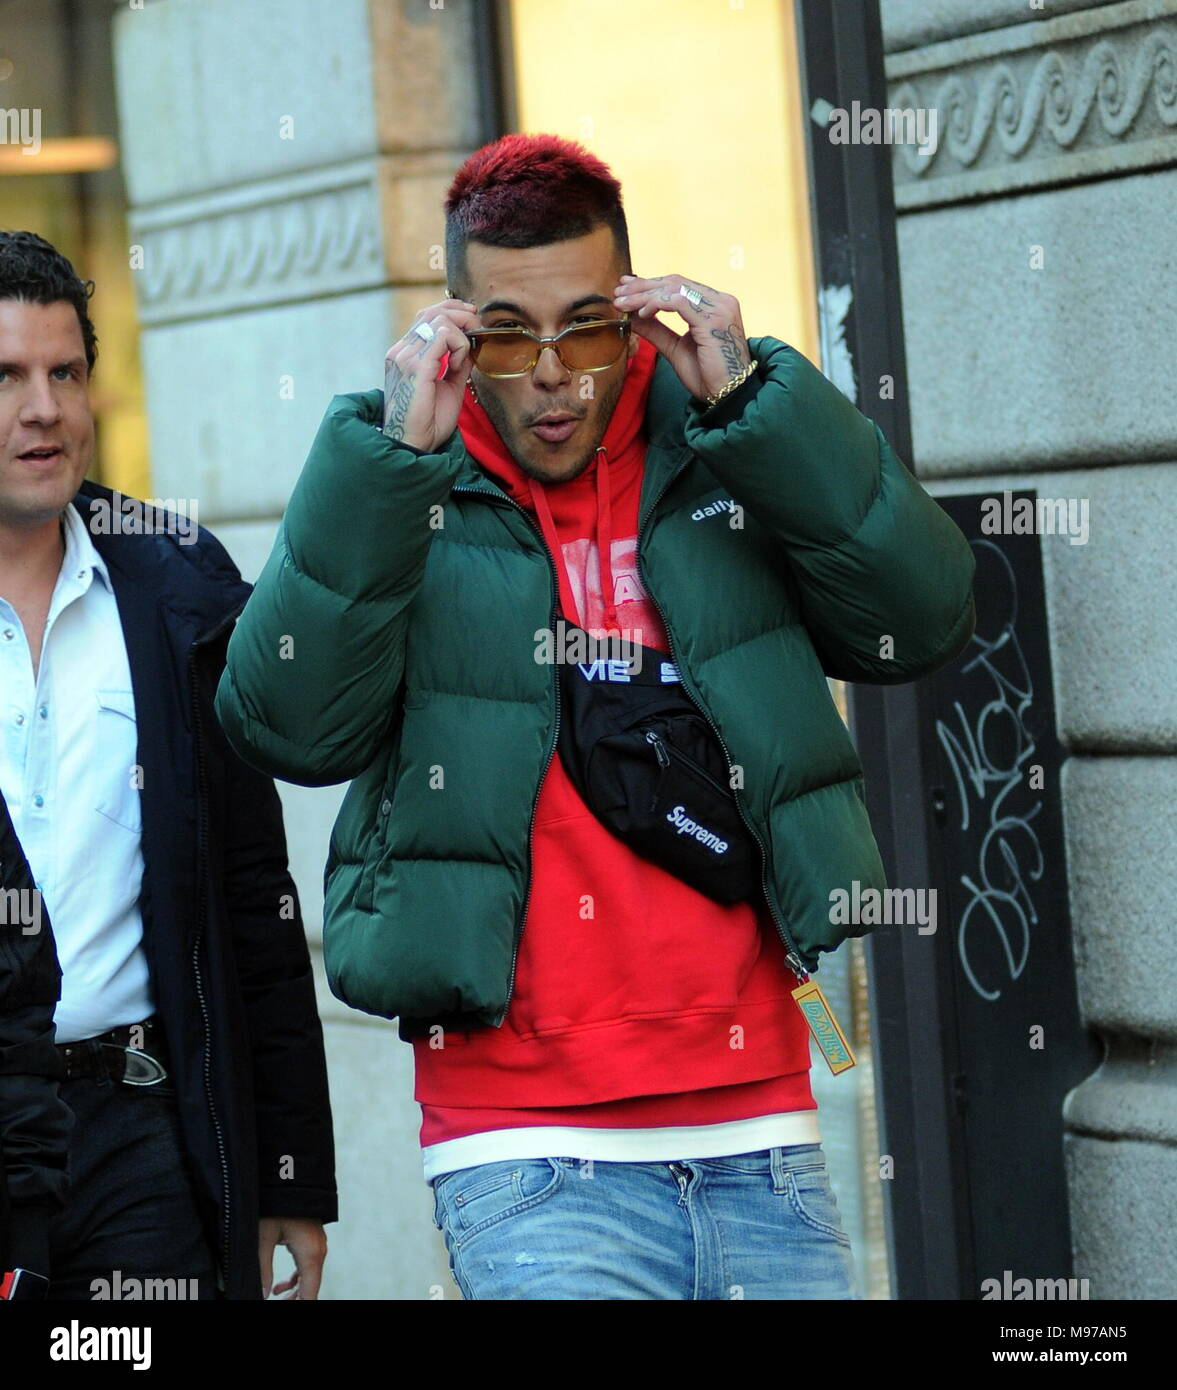 Milan Sfera Ebbasta Walks In The Center The Famous Rapper Sfera Ebbasta Surprised To Walk Through The Streets Of The Center Here He Is With Friends Walking In Via Montenapoleone Stock Photo